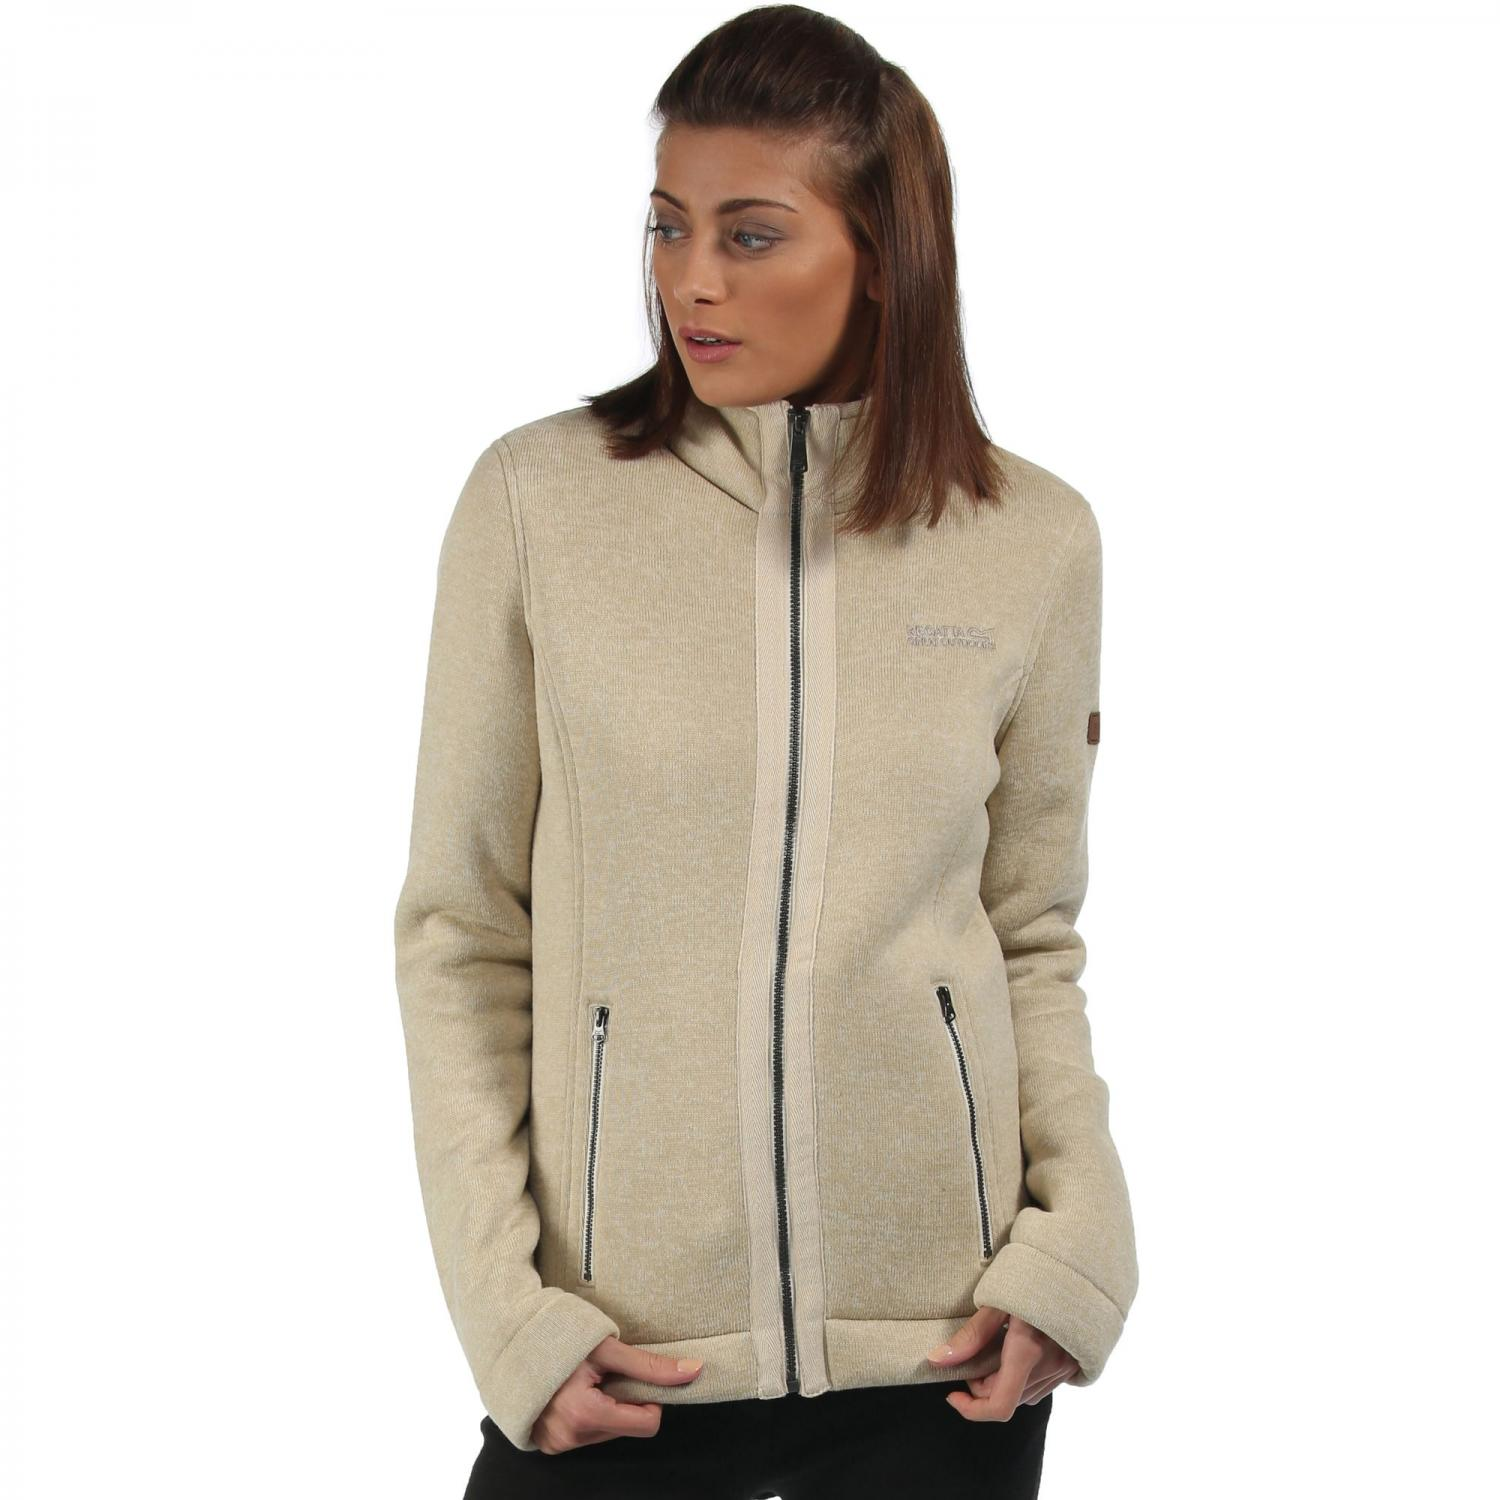 Ranita Fleece Light Vanilla